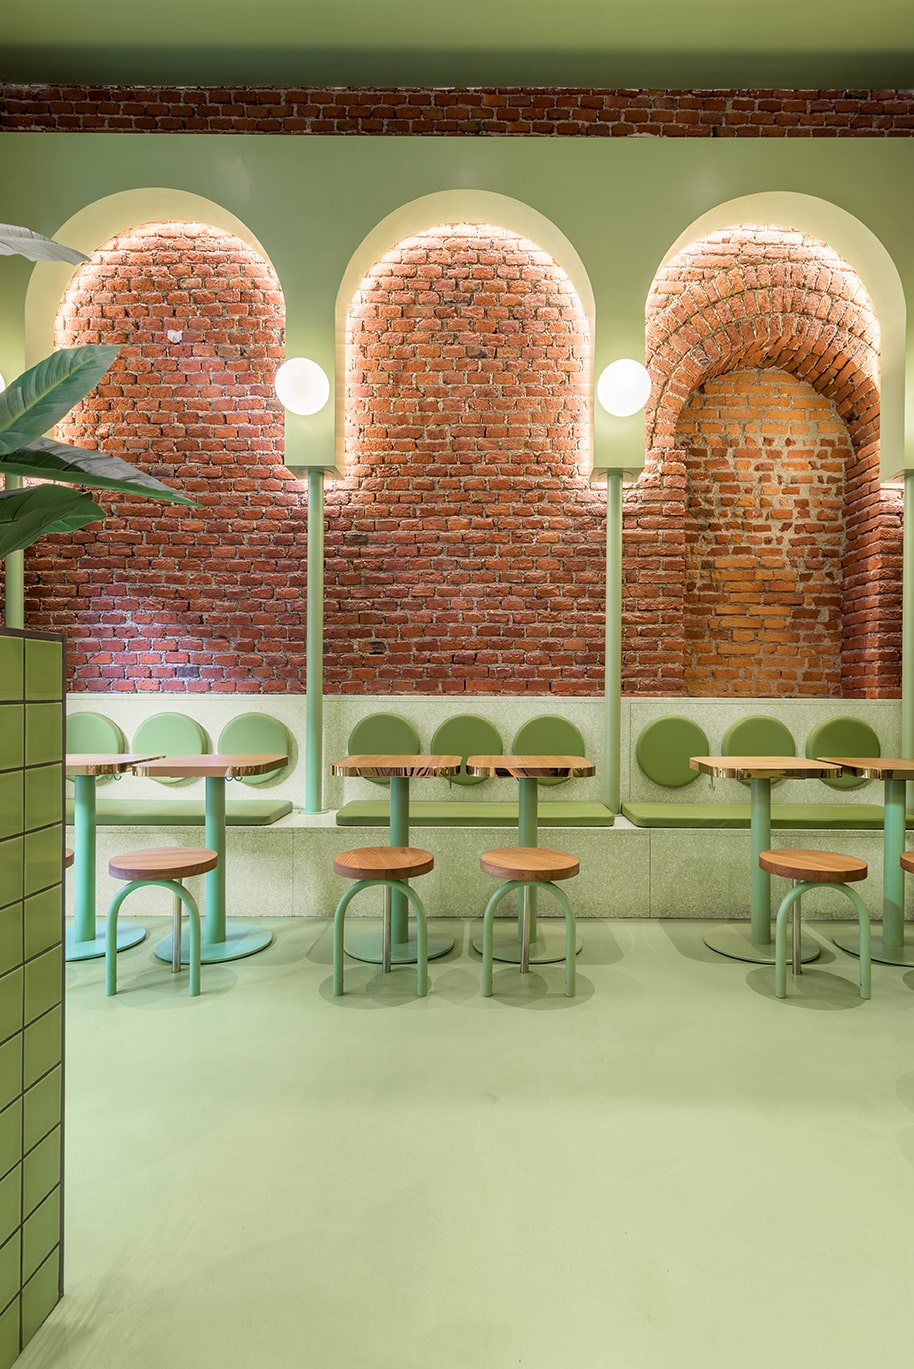 This is another view of the green side of the restaurant with its small wooden tables and small chairs paired with built-in benches on the far side under the red brick wall.